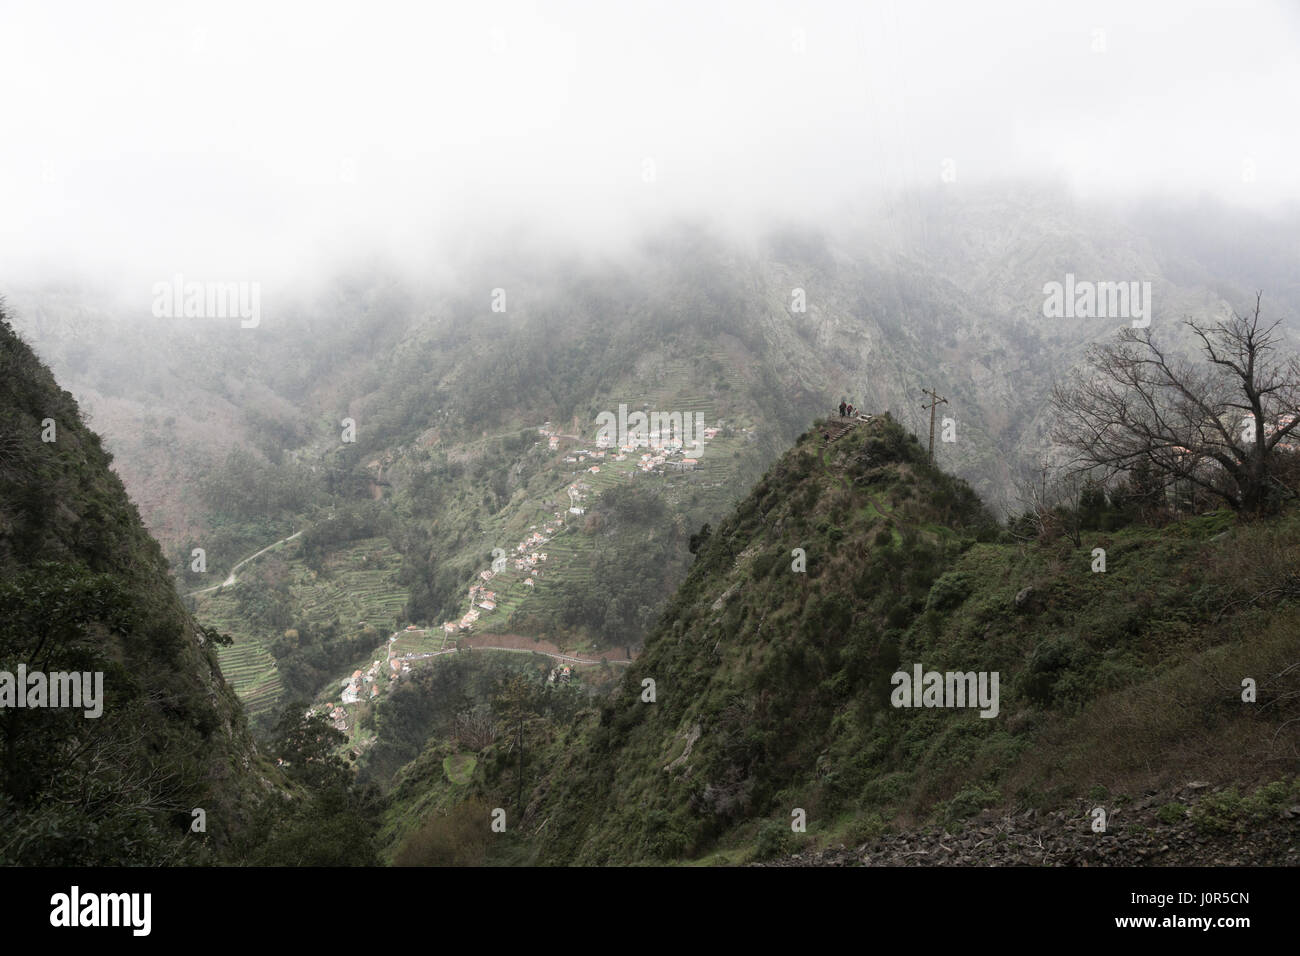 A group of tourists looking out from a promontory down into Curral das Freiras, Madeira - Stock Image